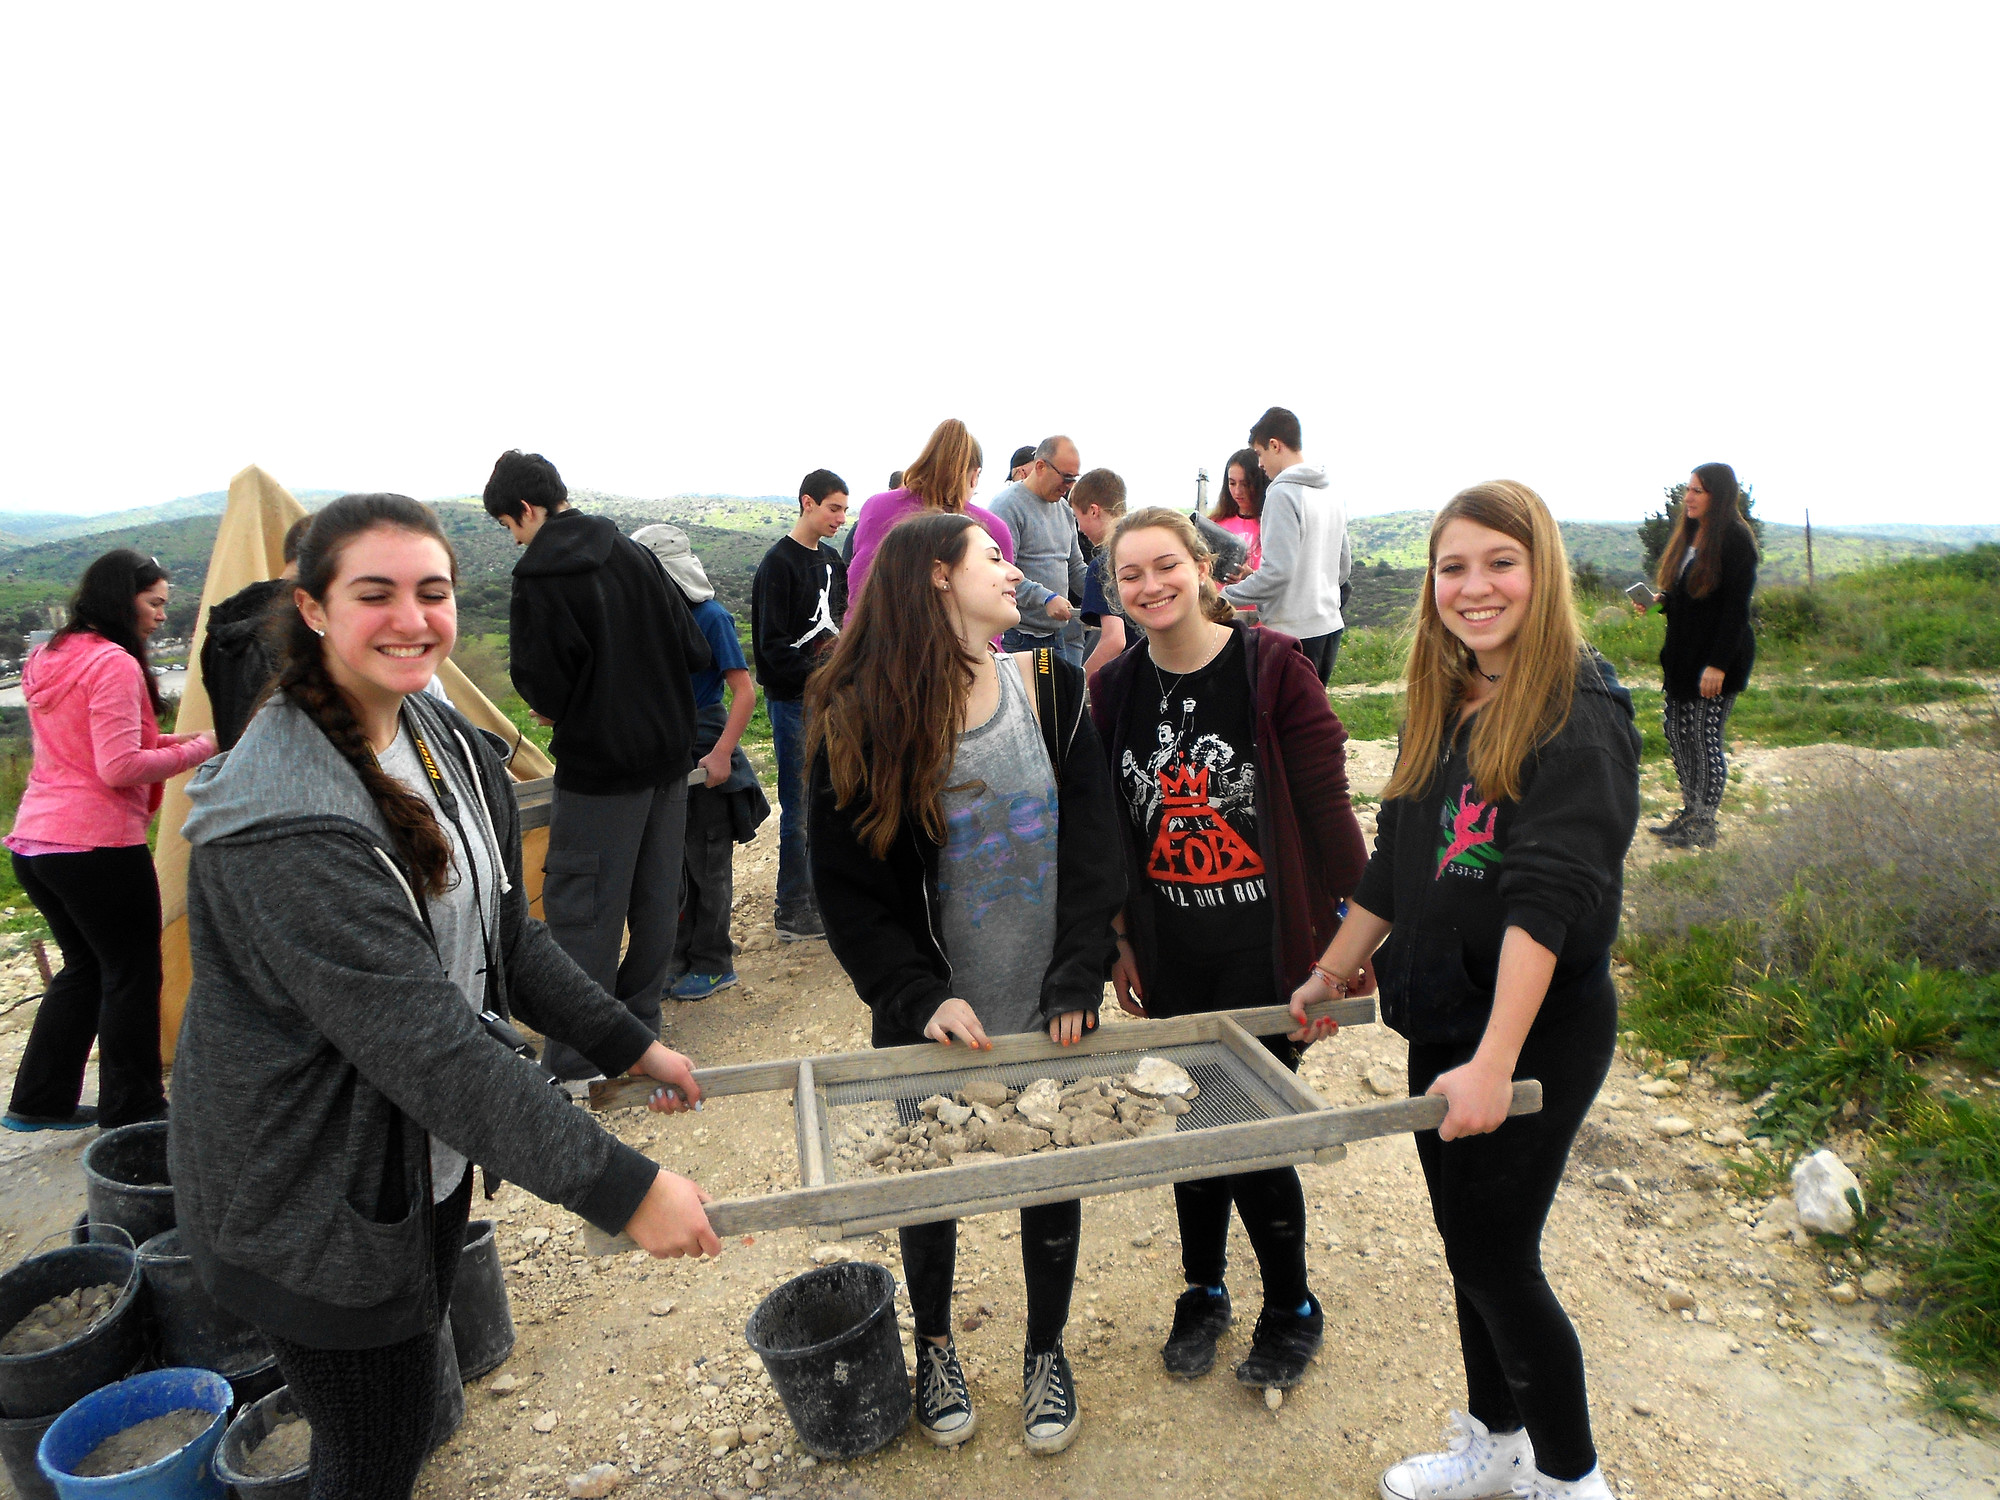 At Beit Guvrin, southwest of Jerusalem, the students assisted at an archaeological dig for the ruins of a city from 165 B.C.E. From left were Danielle Schwartz, Allison Singer, Rachel Gershengoren and Maggie Zaretz.